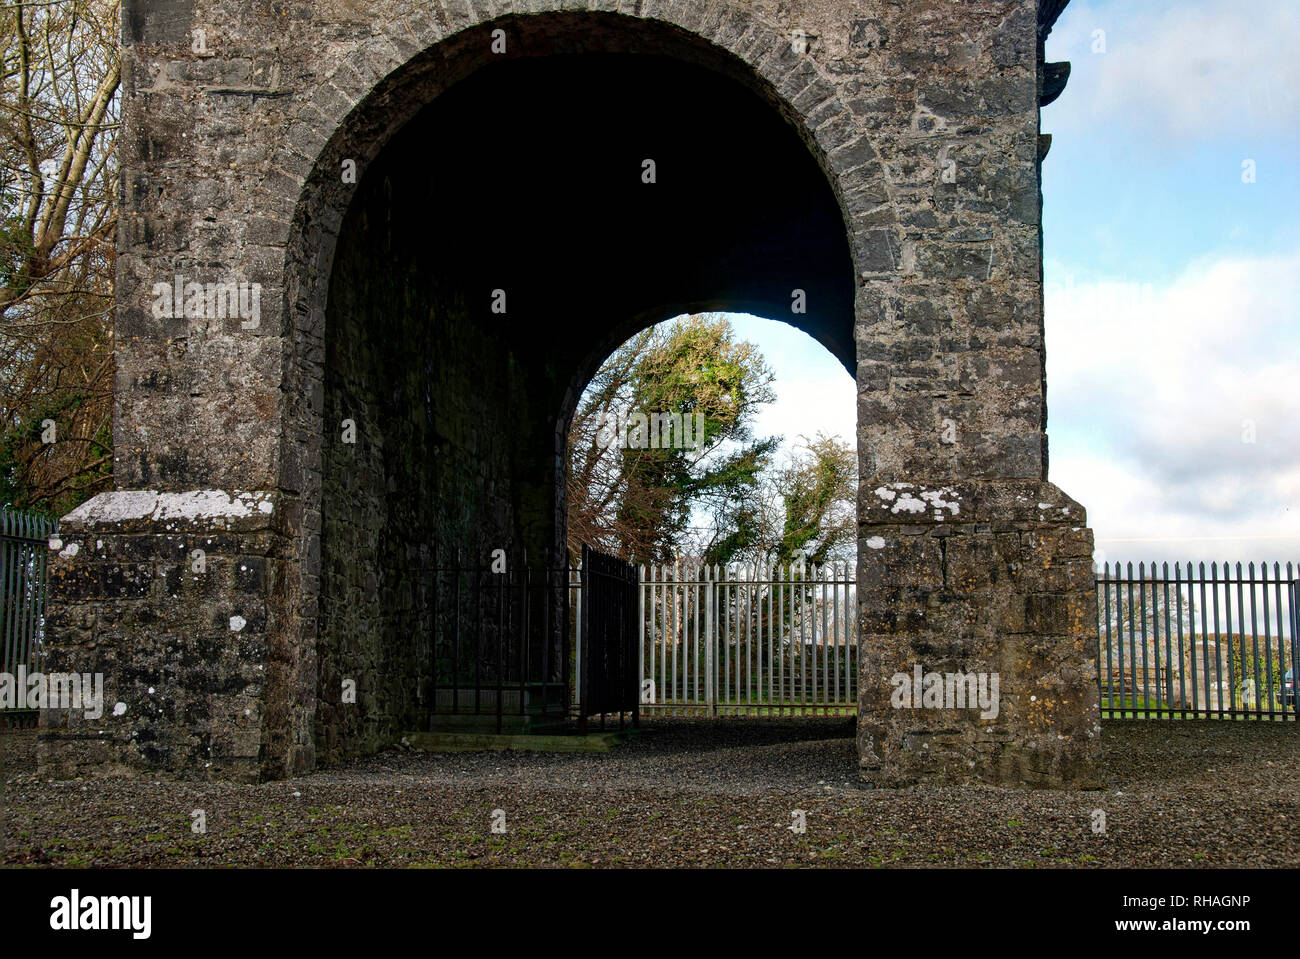 Conolly's Folly,The Obelisk,originally The Conolly Folly,is an obelisk structure and National Monument located near Maynooth,County Kildare,Ireland. - Stock Image